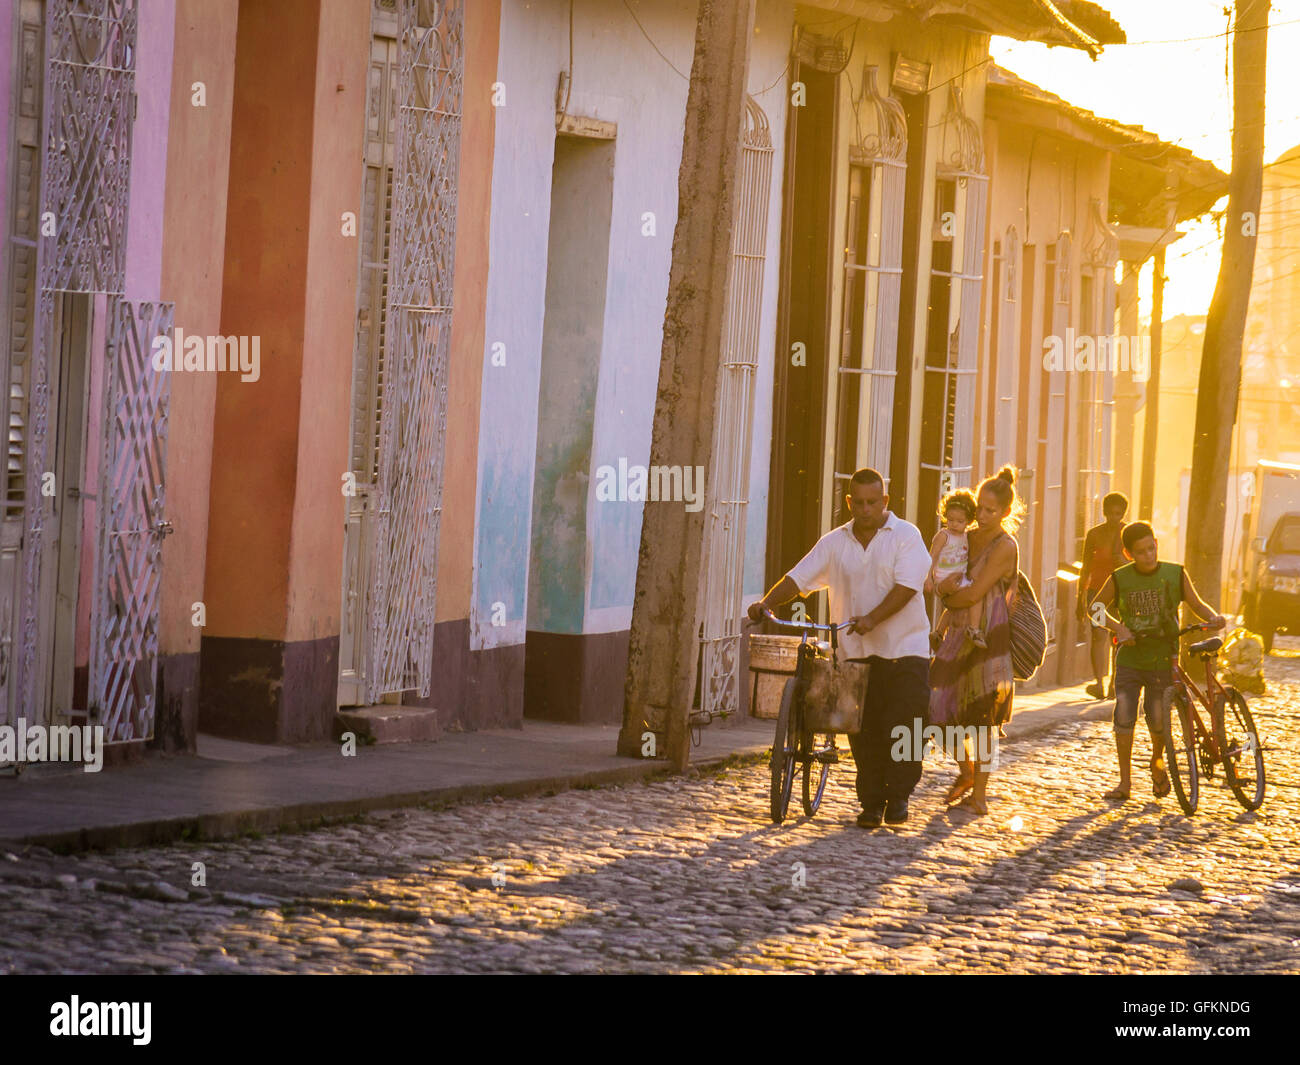 Trinidad, Cuba on December 29, 2015: The warm sunset light shines on the streets of the city centre in the Cuban - Stock Image